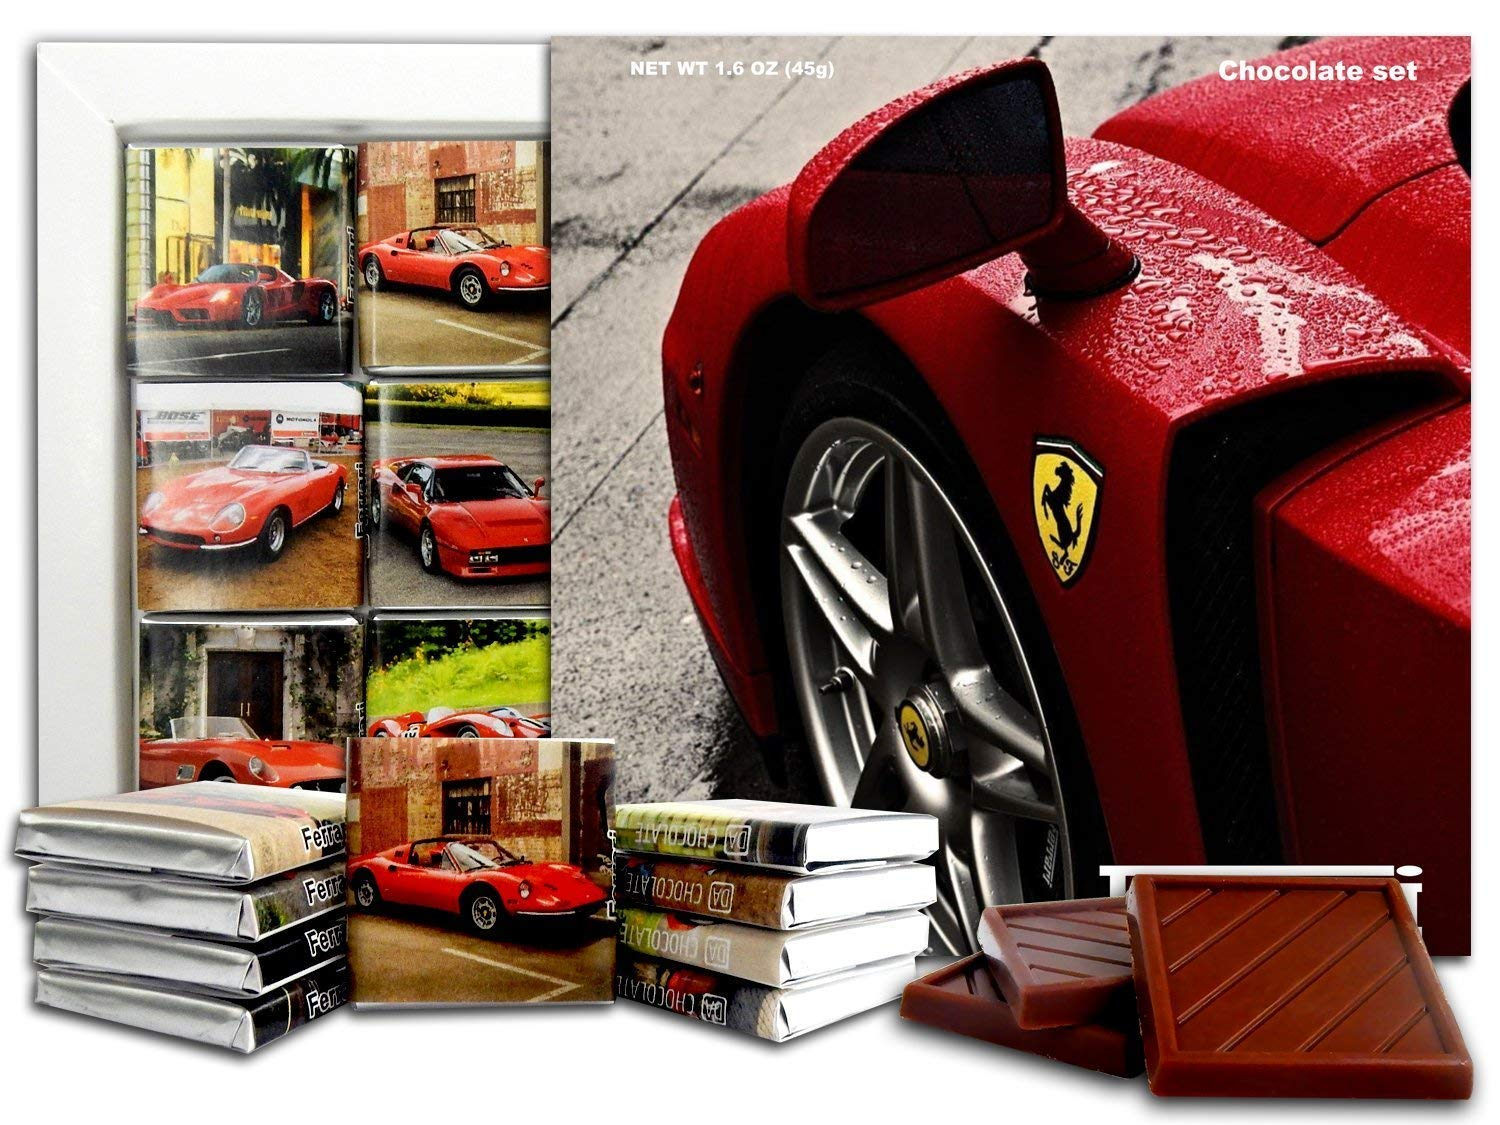 Amazon Com Ferrari Chocolate Gift Set 5x5in 1 Box Logo Prime 0771 Grocery Gourmet Food